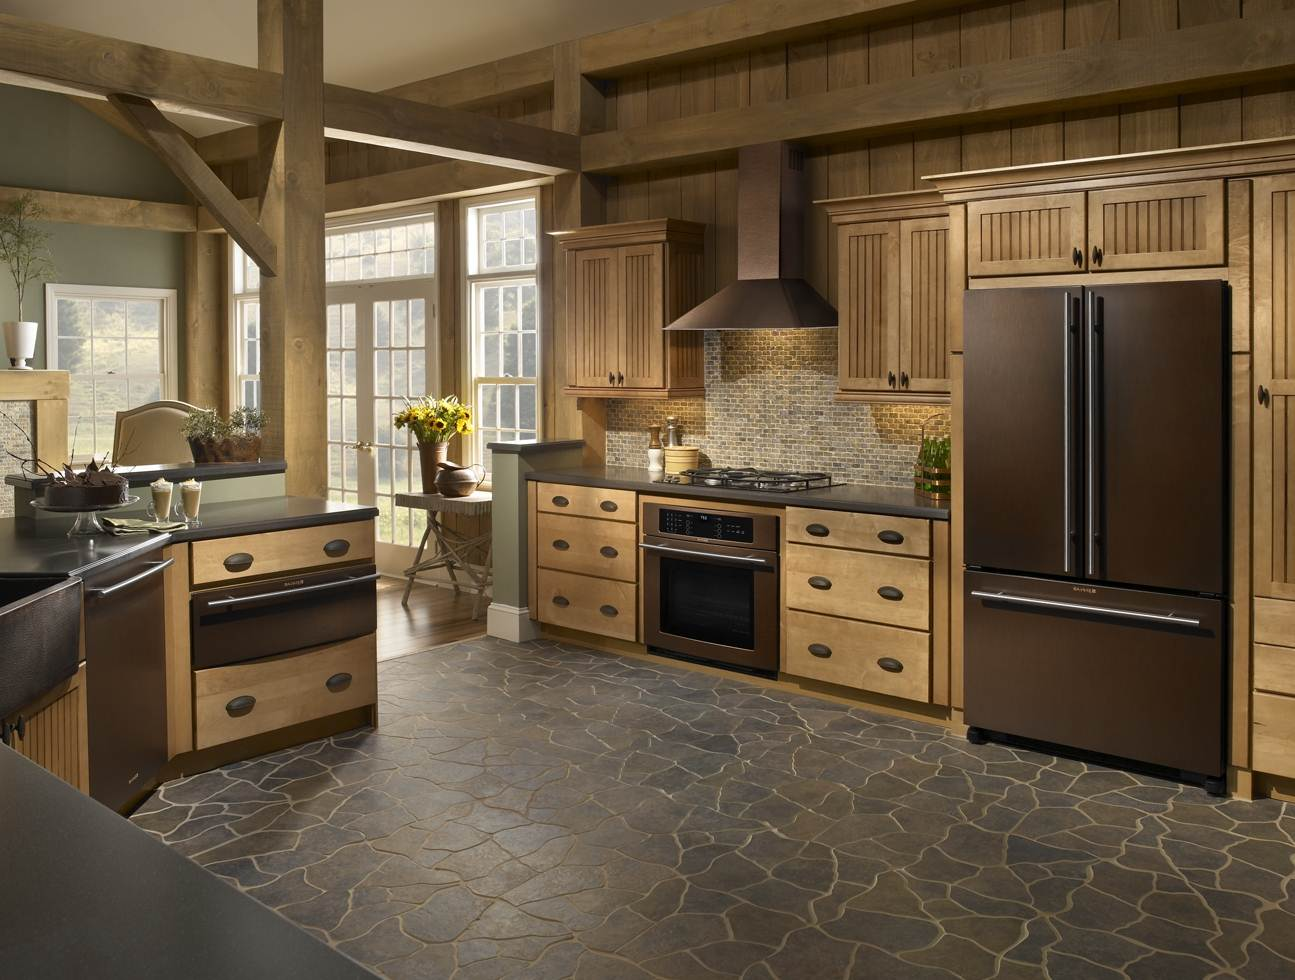 Image of: Distressed Wood Kitchen Cabinets